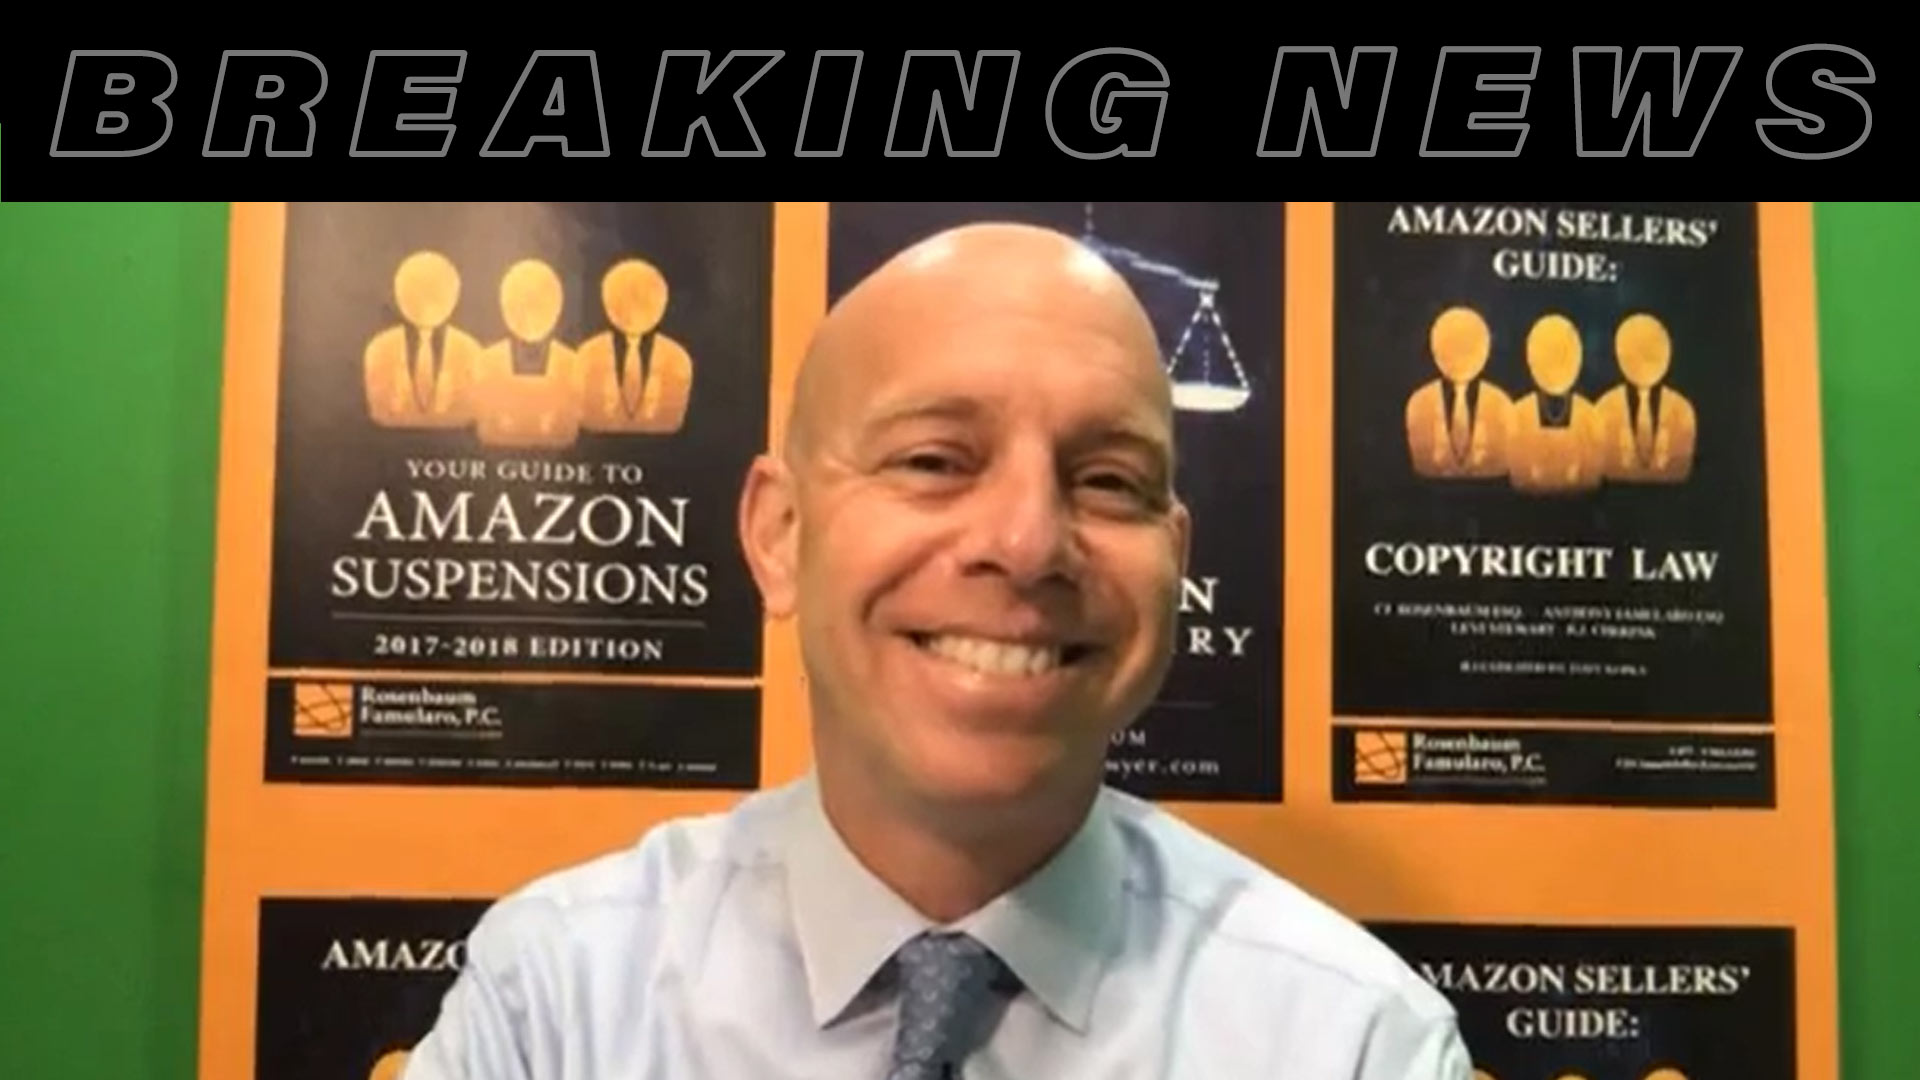 Breaking News for Amazon Sellers 5-16-19